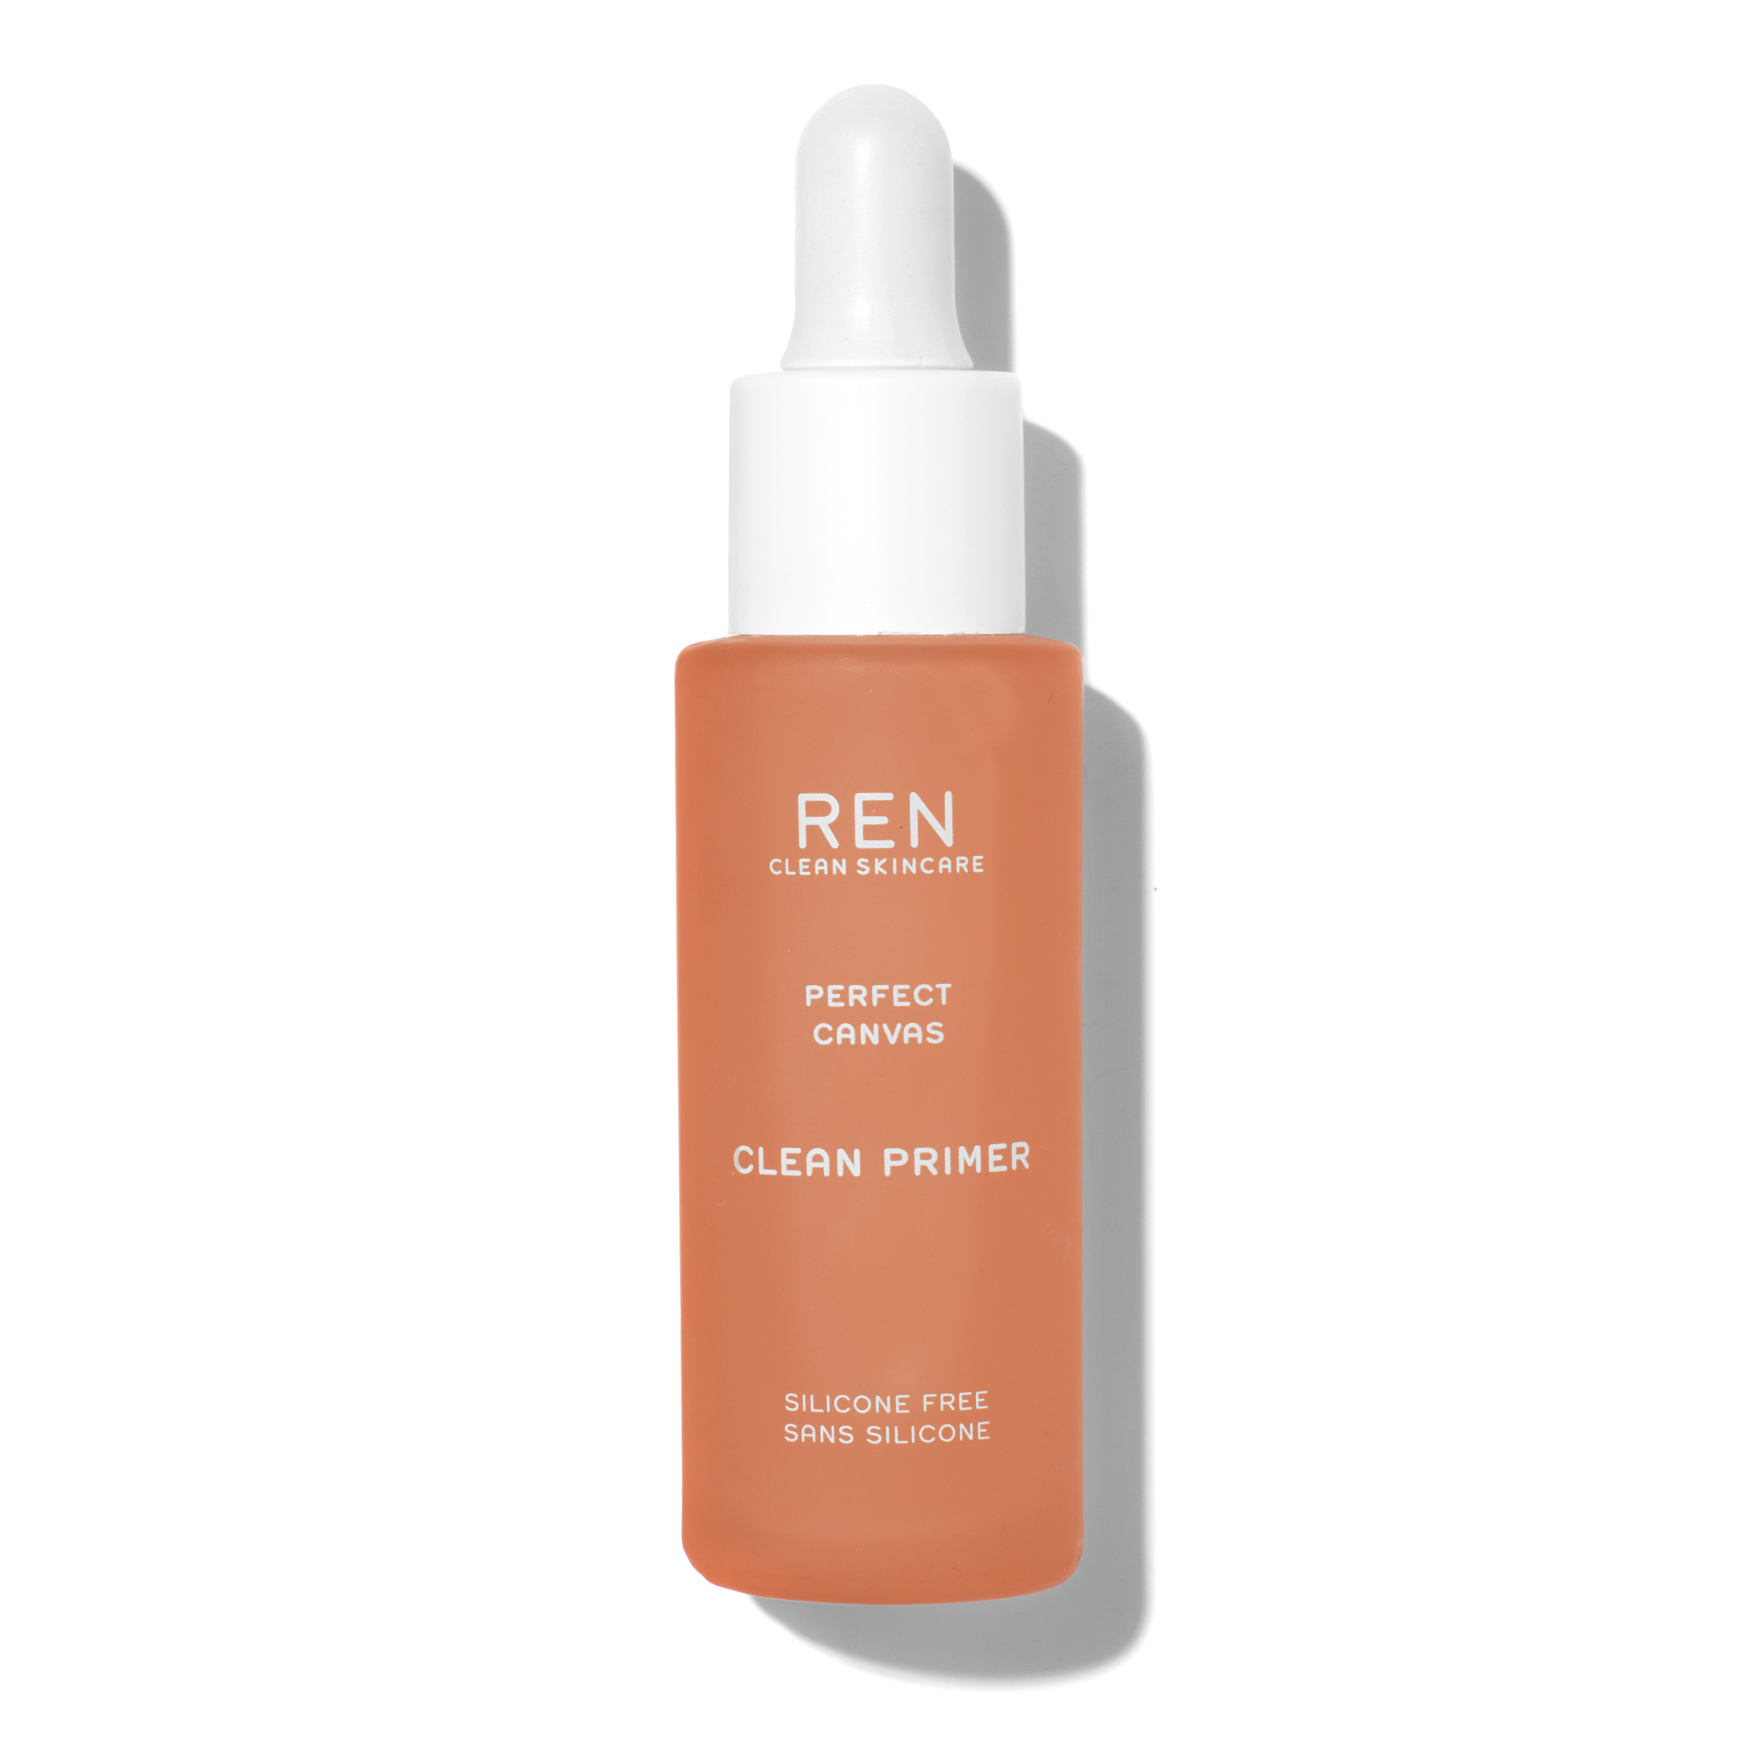 Ren Clean Skincare - Perfect Canvas Clean Primer